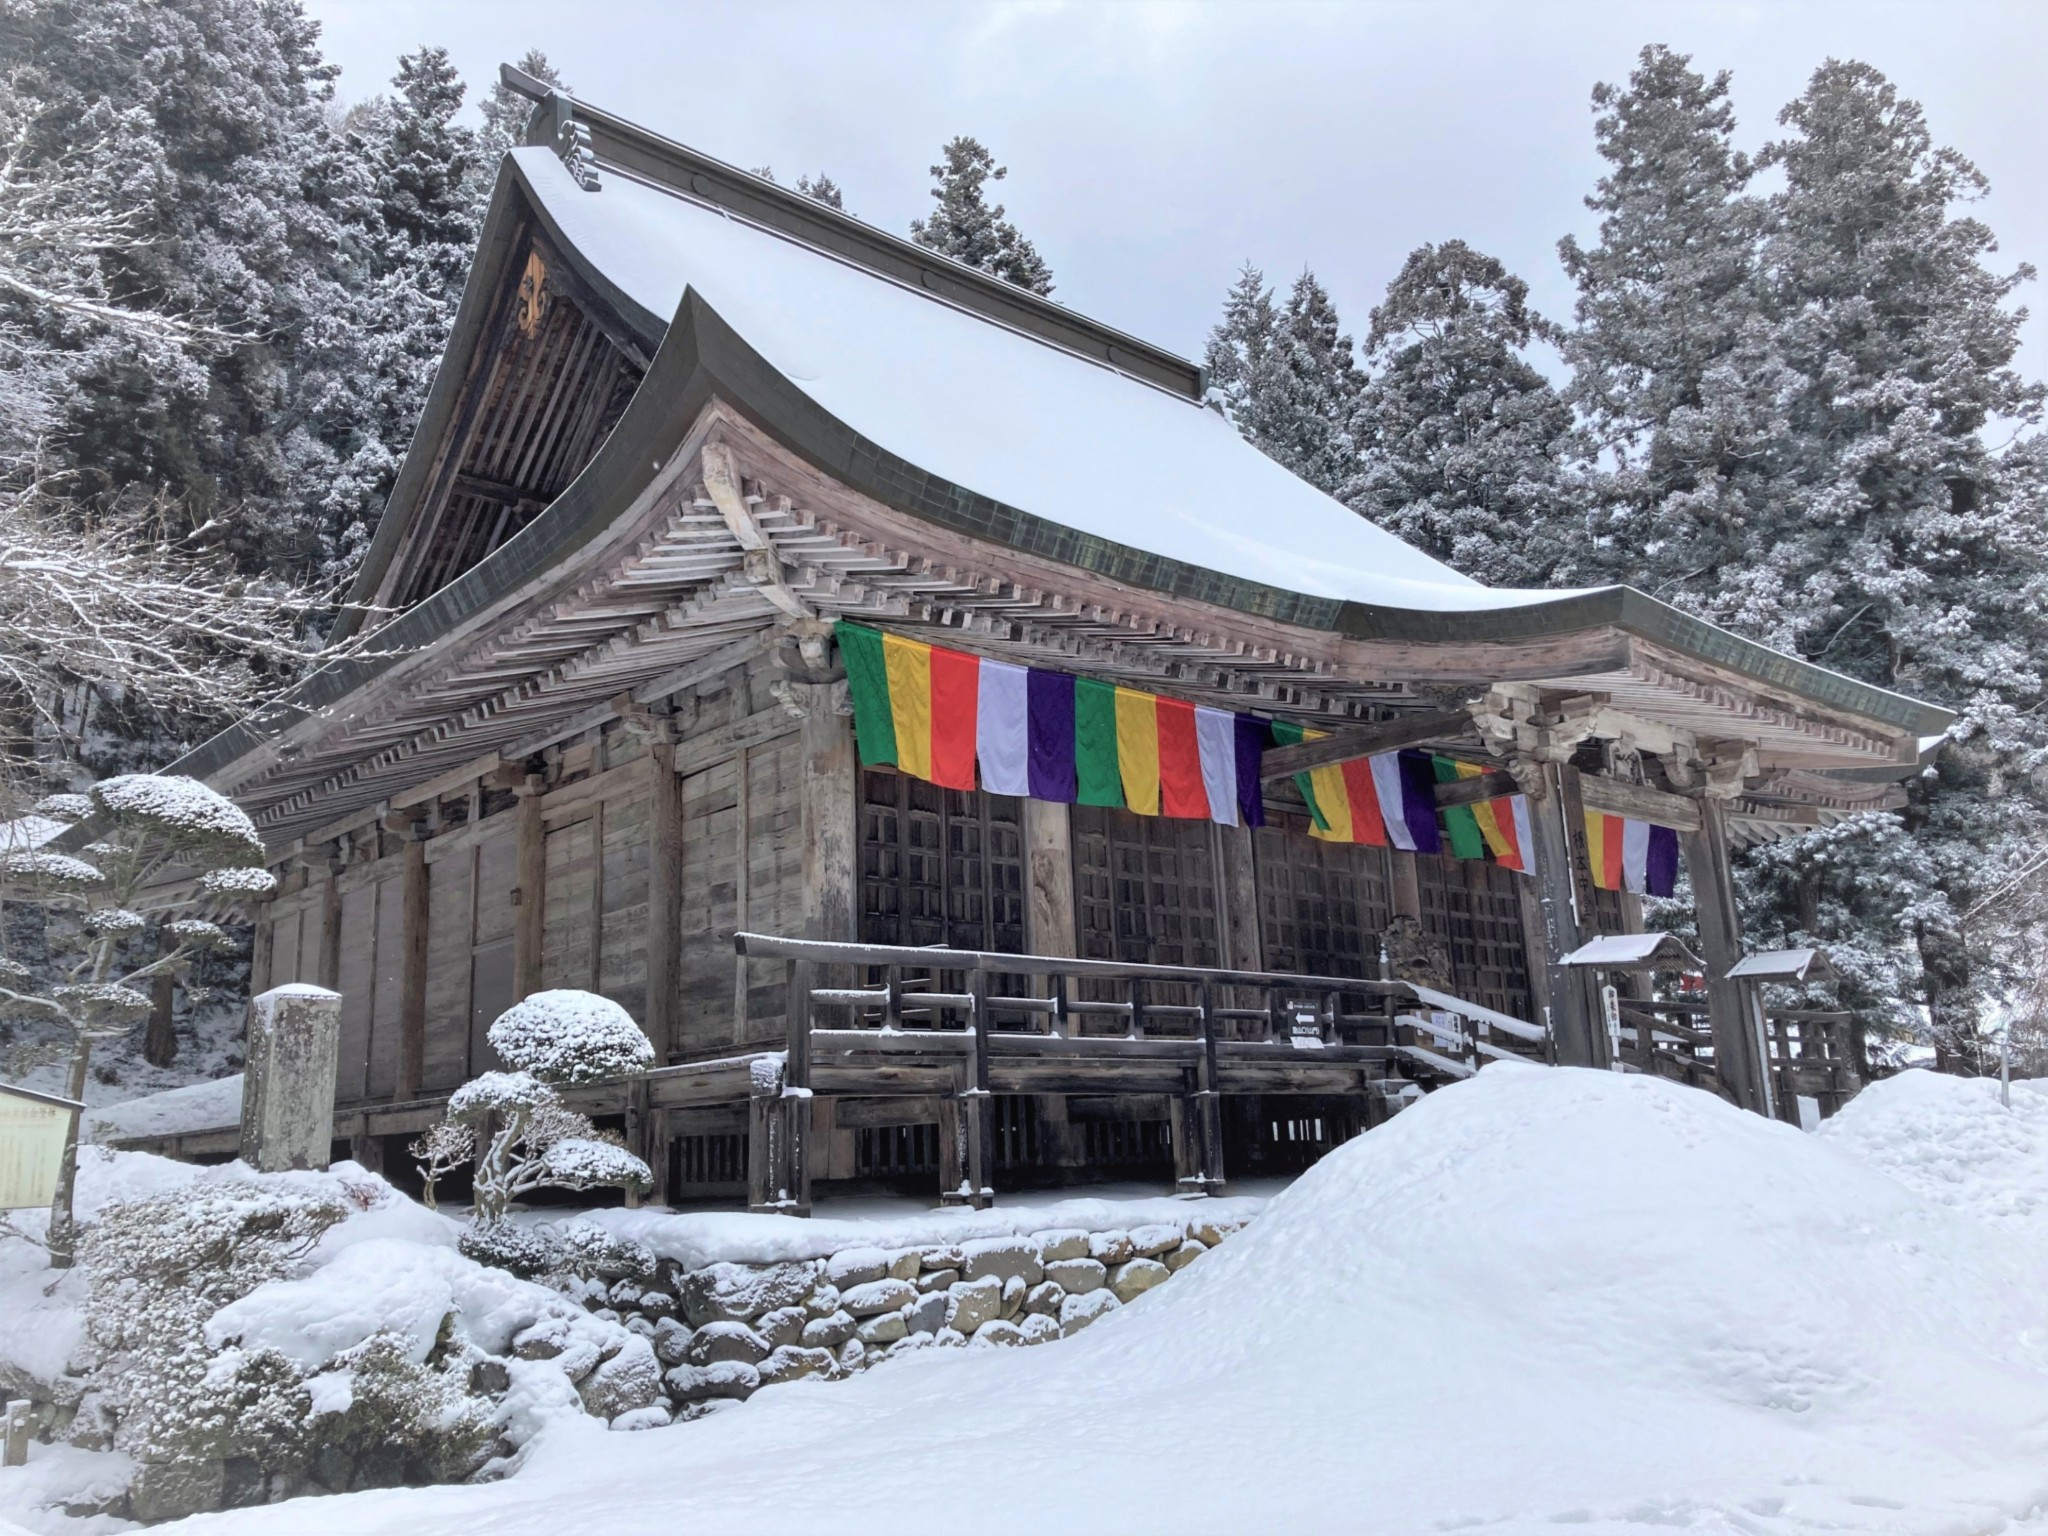 A large ornate Japanese Buddhist temple situated in front of a snowy forest.